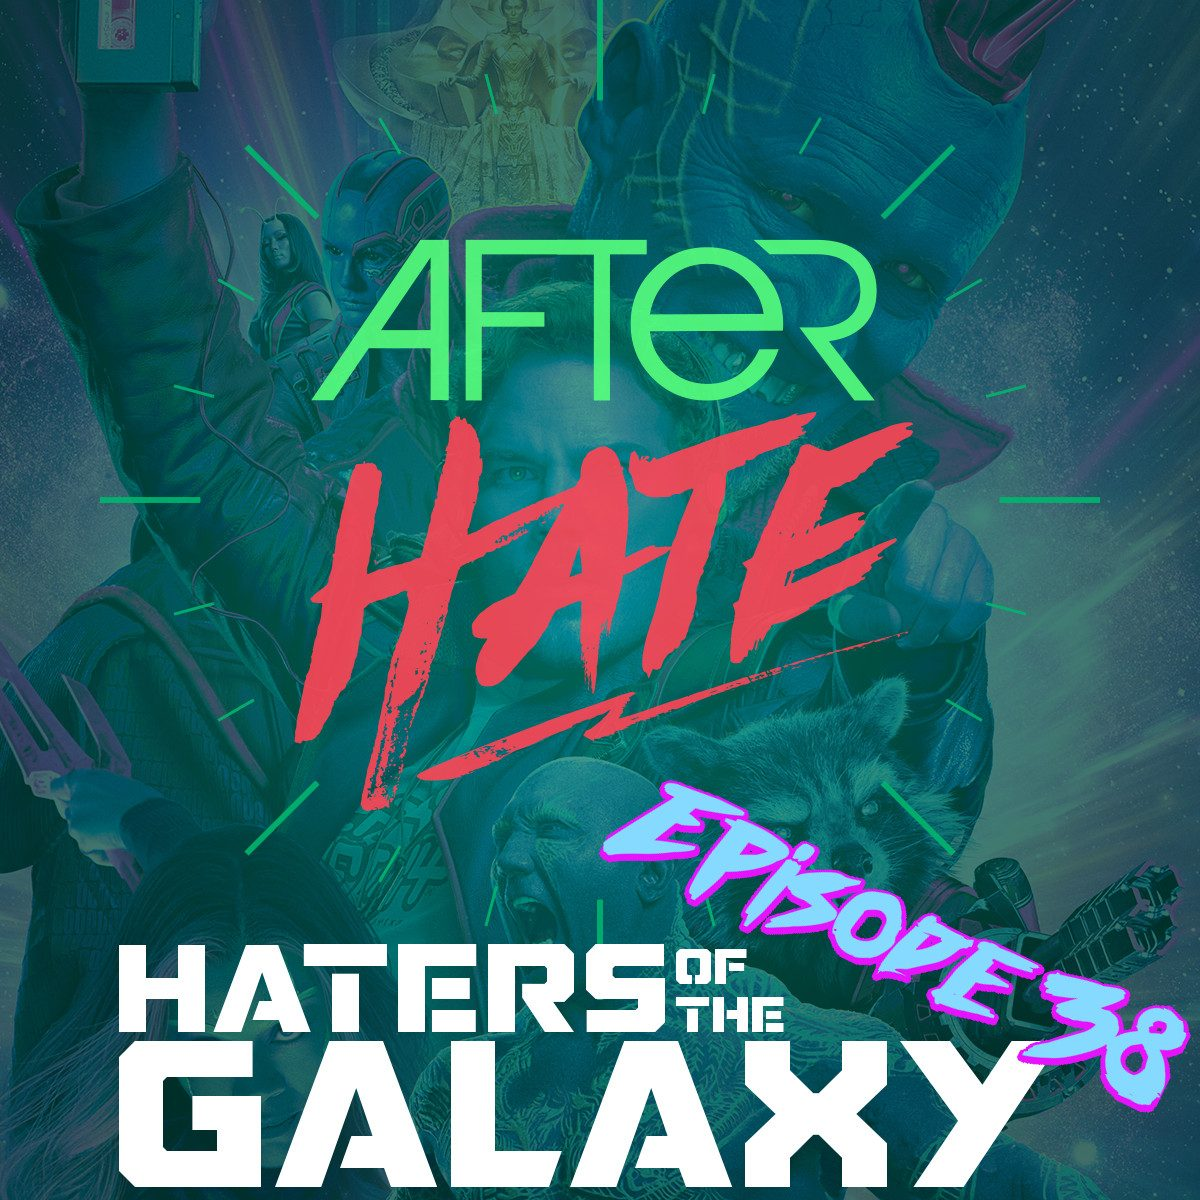 Haters of the Galaxy